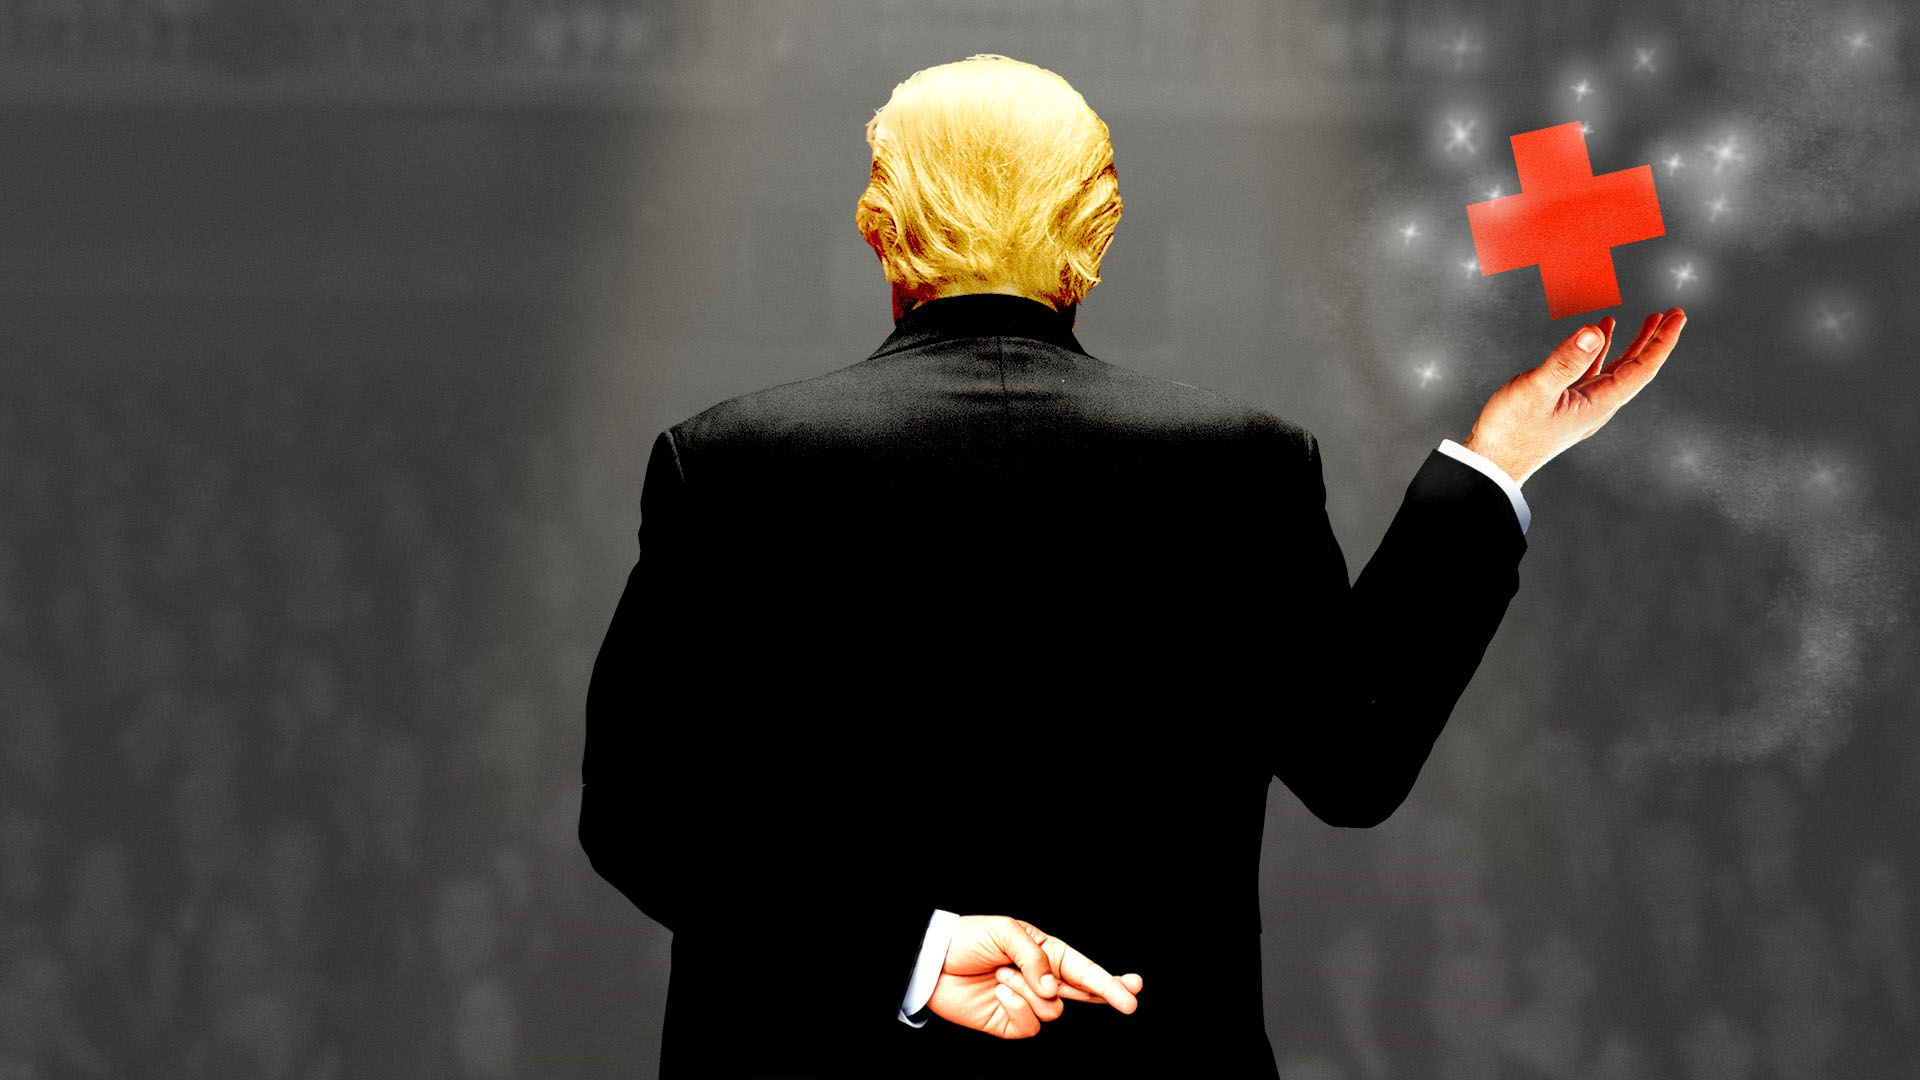 Illustration of President Donald Trump presenting a levitating red cross with his fingers crossed behind his back